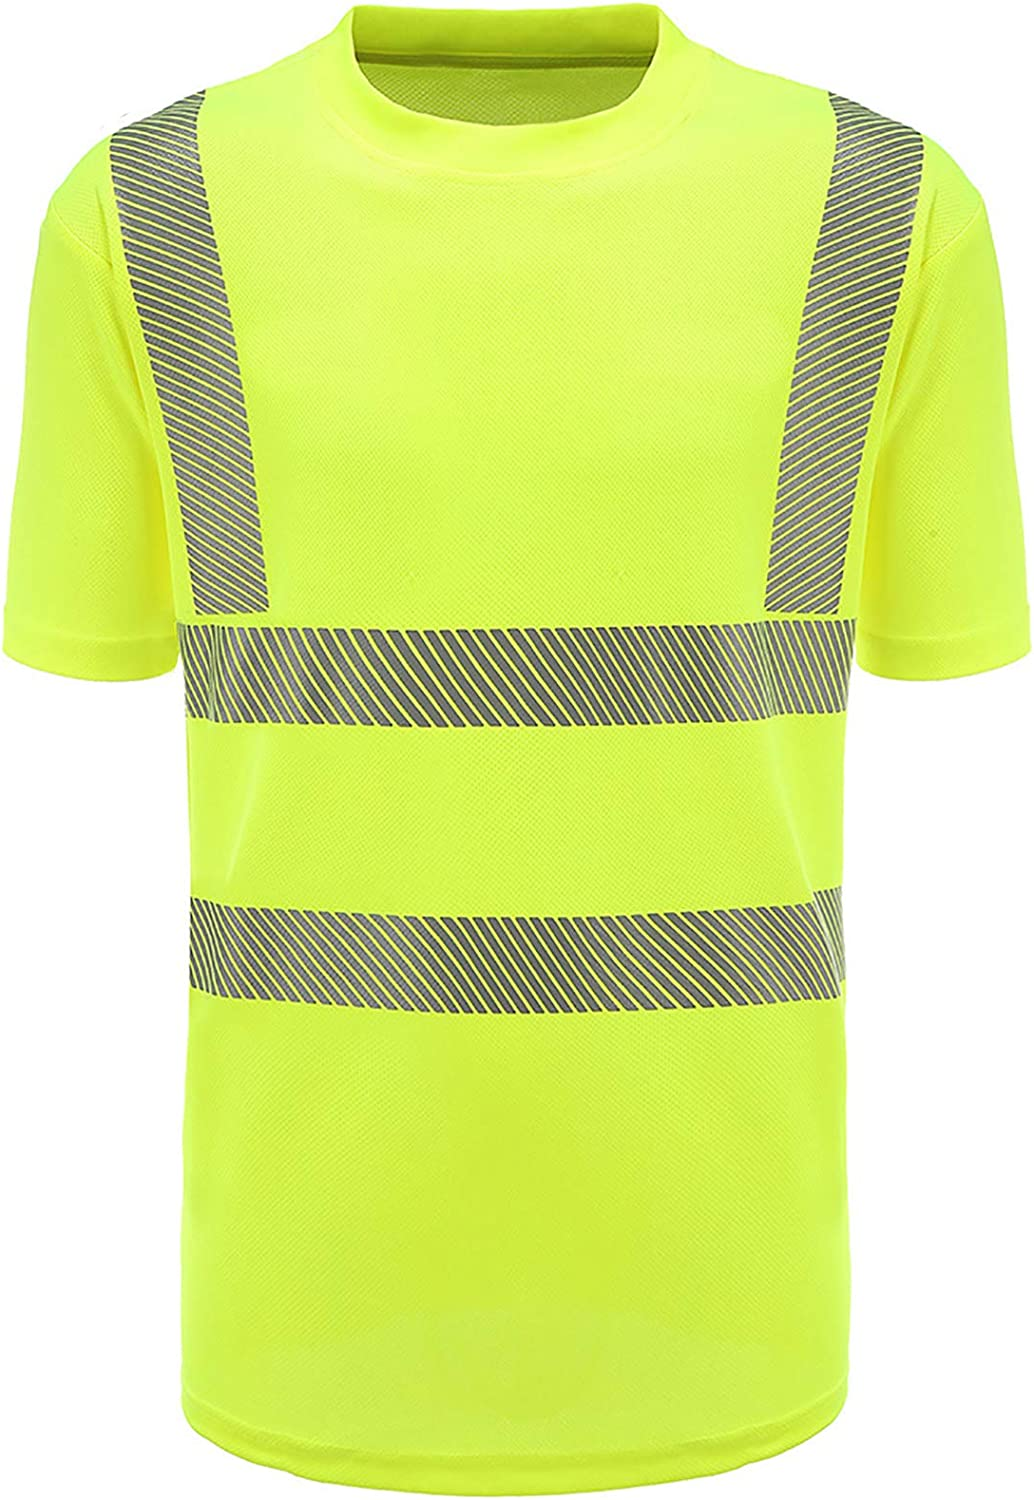 Choice 360 USA ANSI ISEA Be super welcome Class 2 Dry Safety Mesh Fit Compliant Reflecti